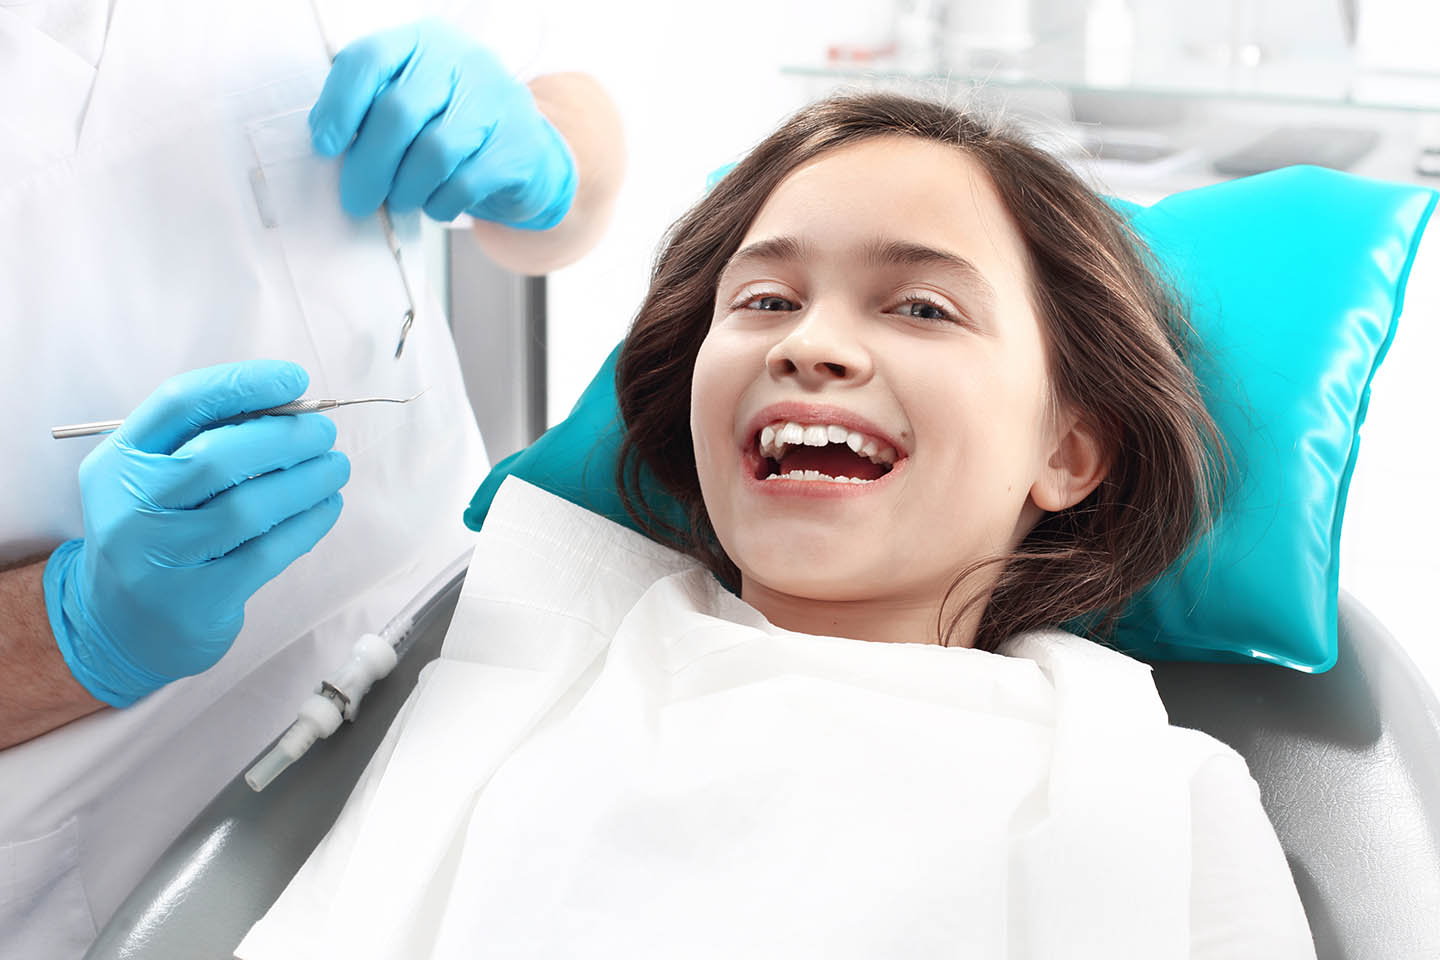 young girl smiling at the dentist office